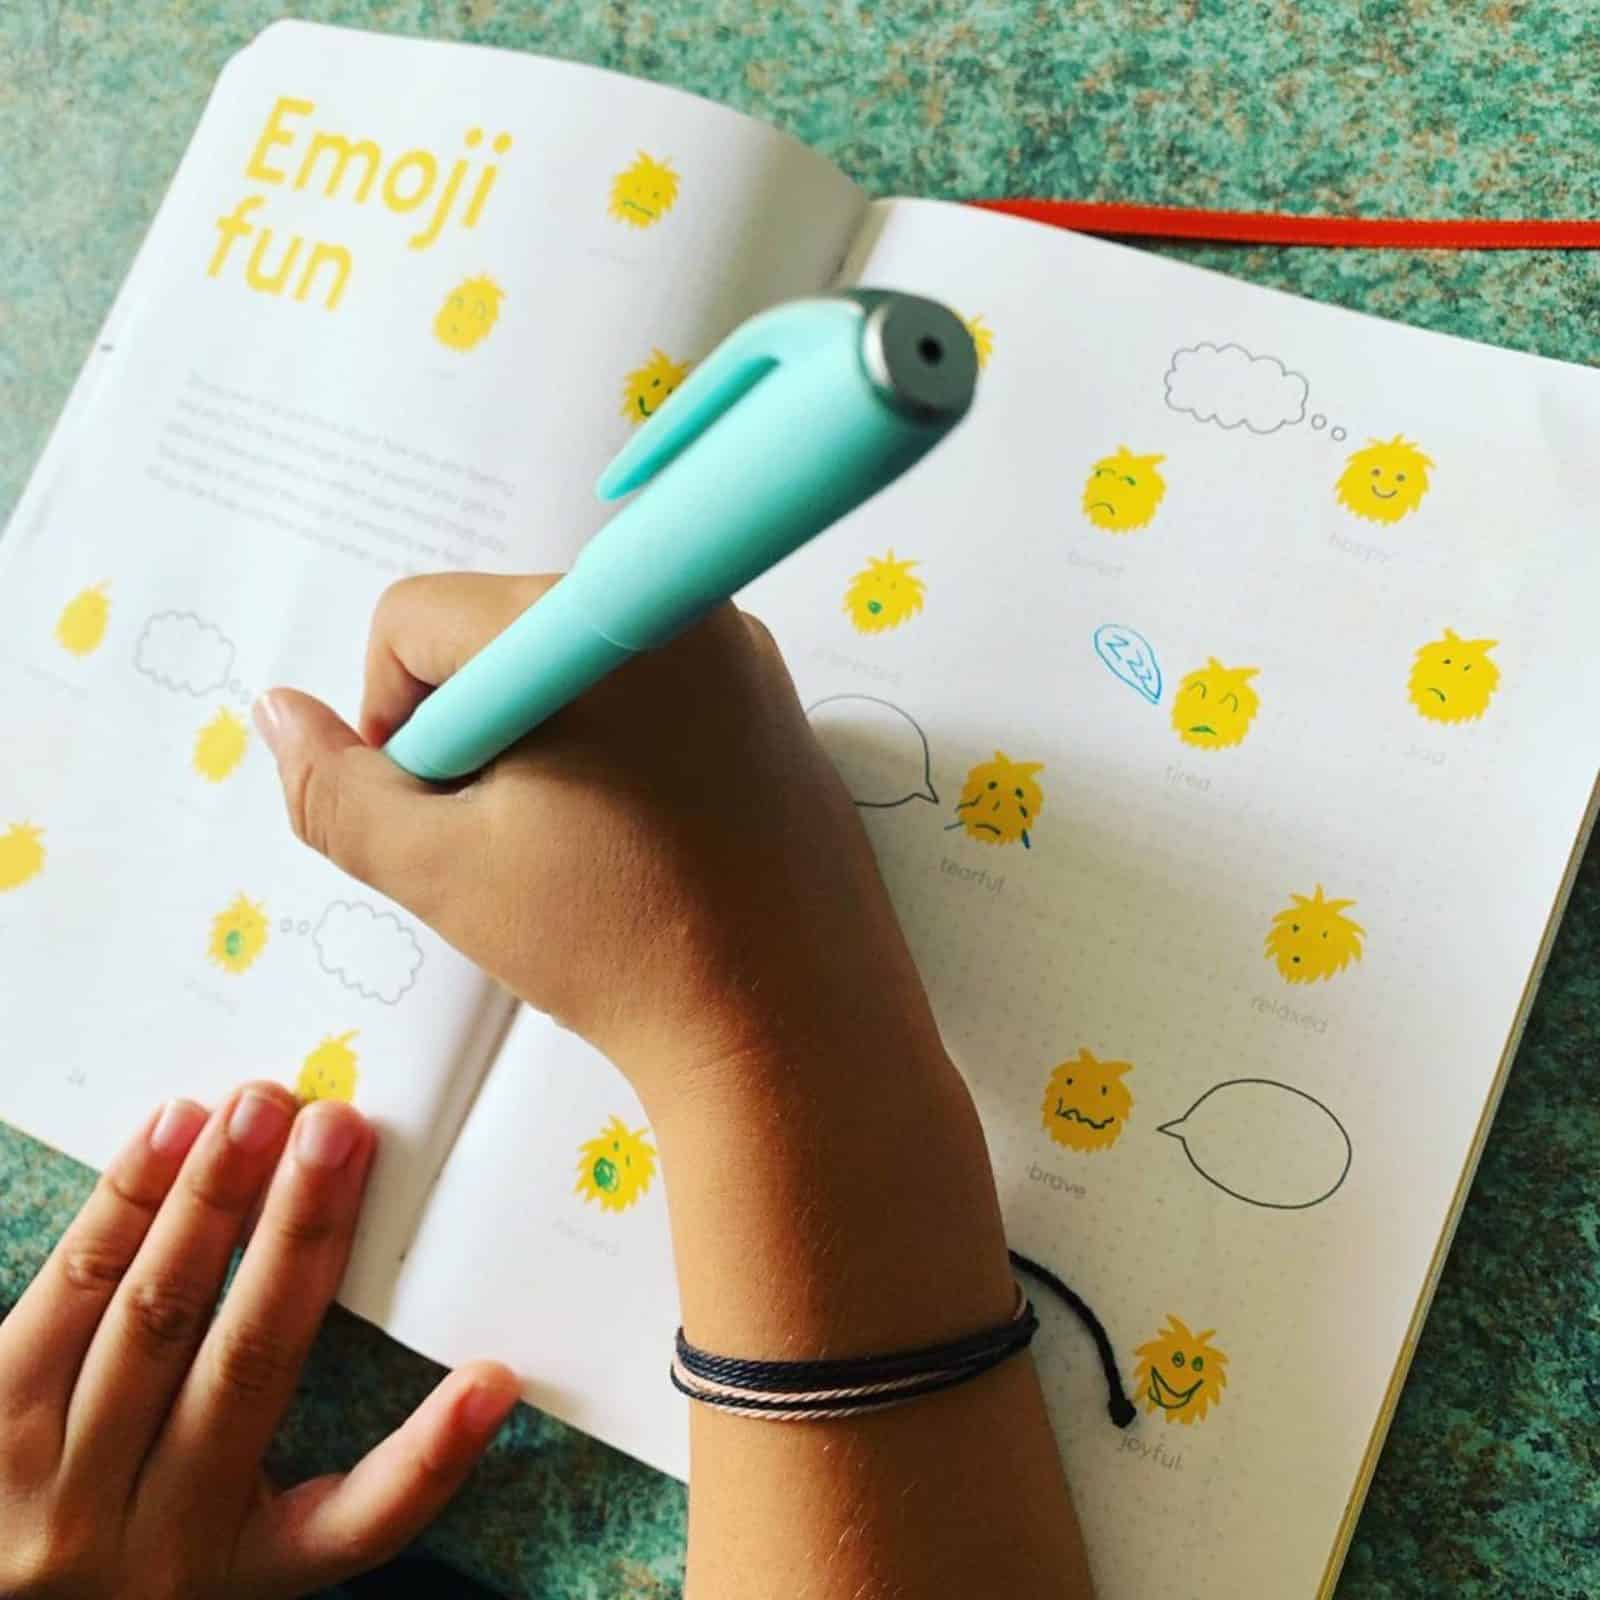 THE HAPPYSELF JOURNAL - kid's journal promoting healthy habits